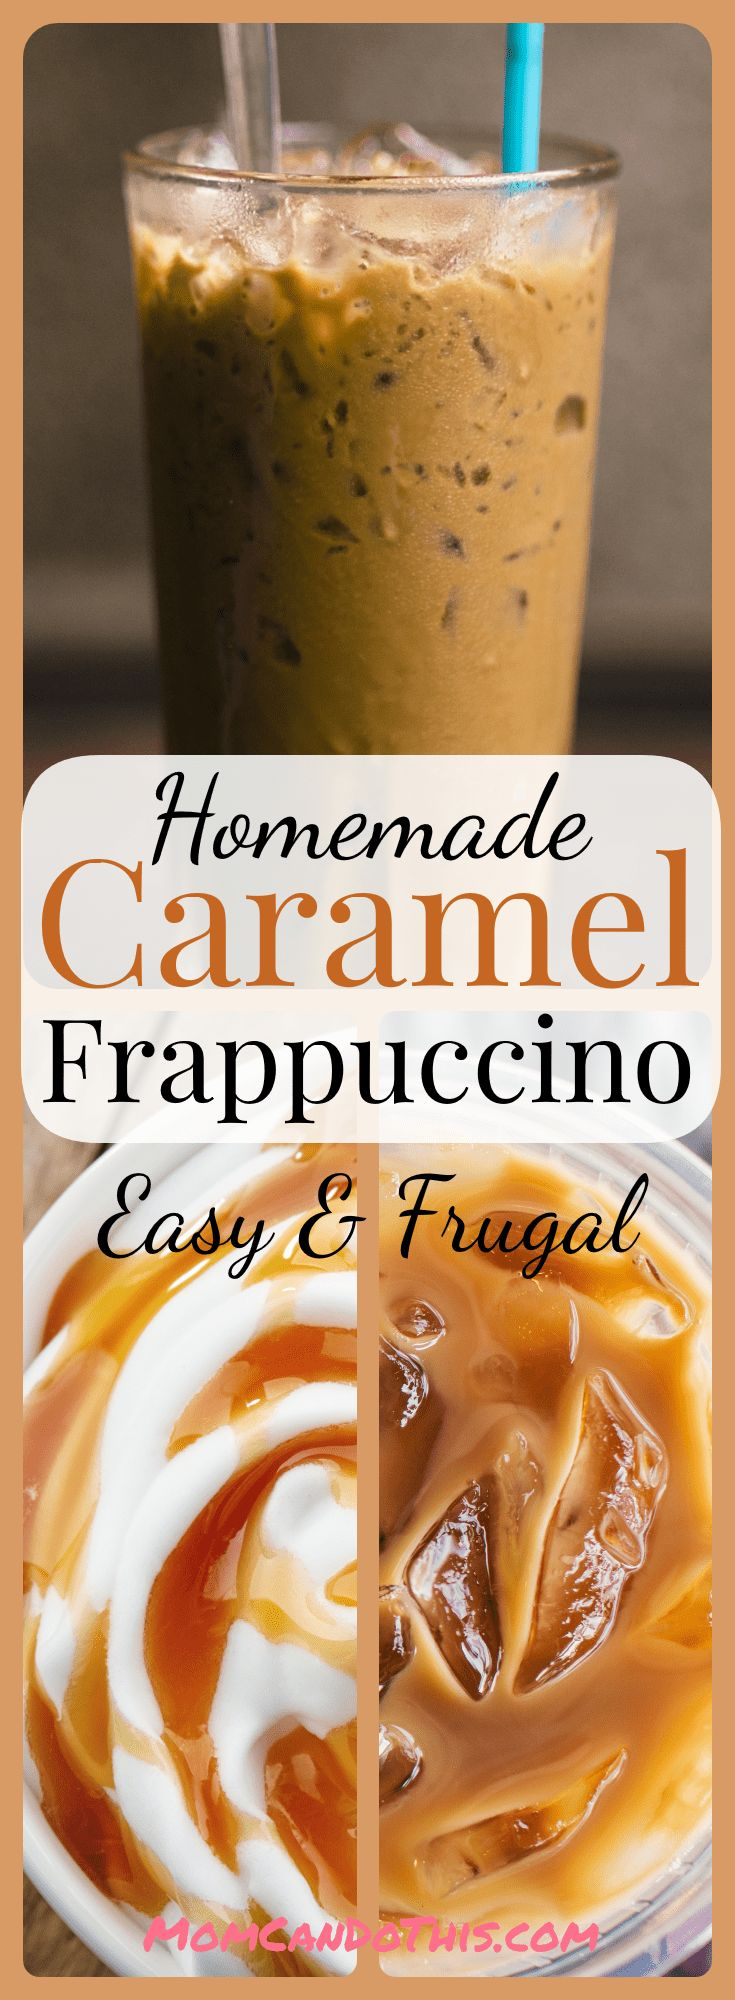 Simple Recipe For Homemade Caramel Frappuccino. Click through to print recipe and try this one today. My new super favorite coffee drink! Easy and frugal homemade frappuccino recipe.